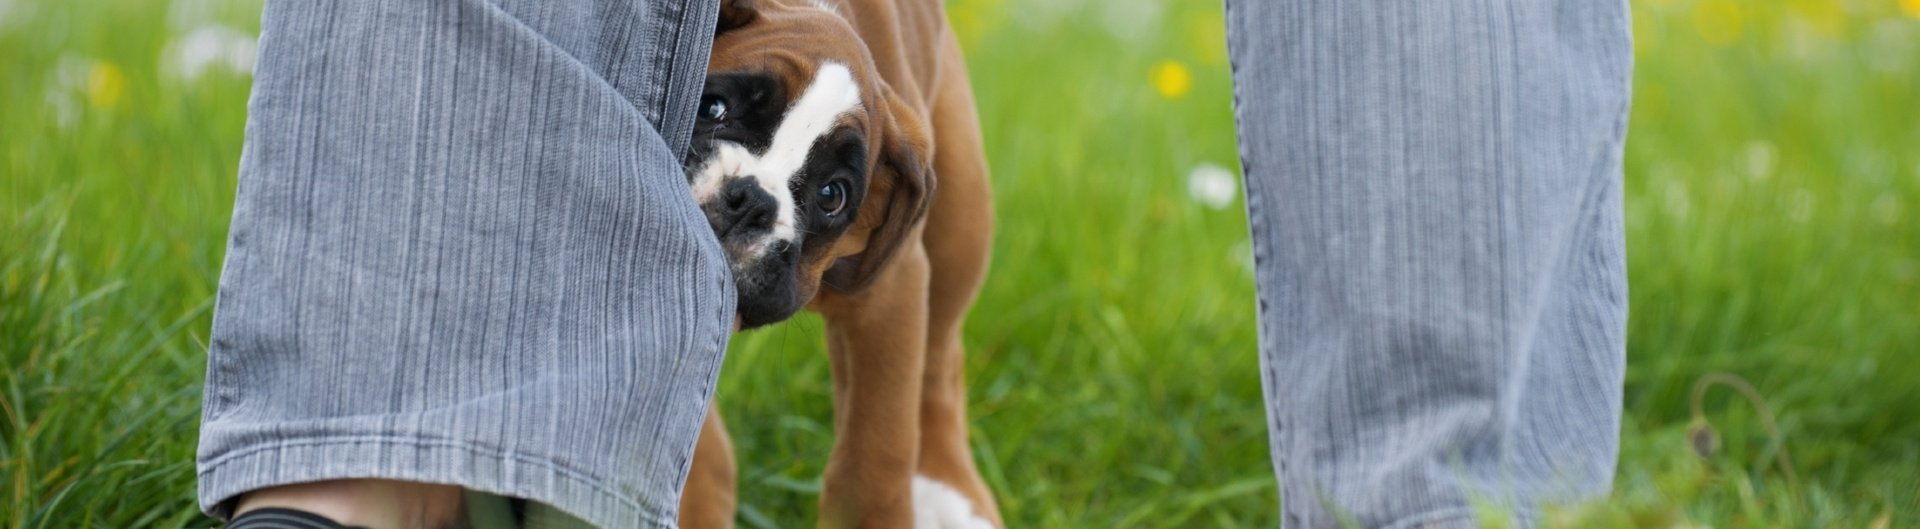 boxer-puppy-biting-nipping